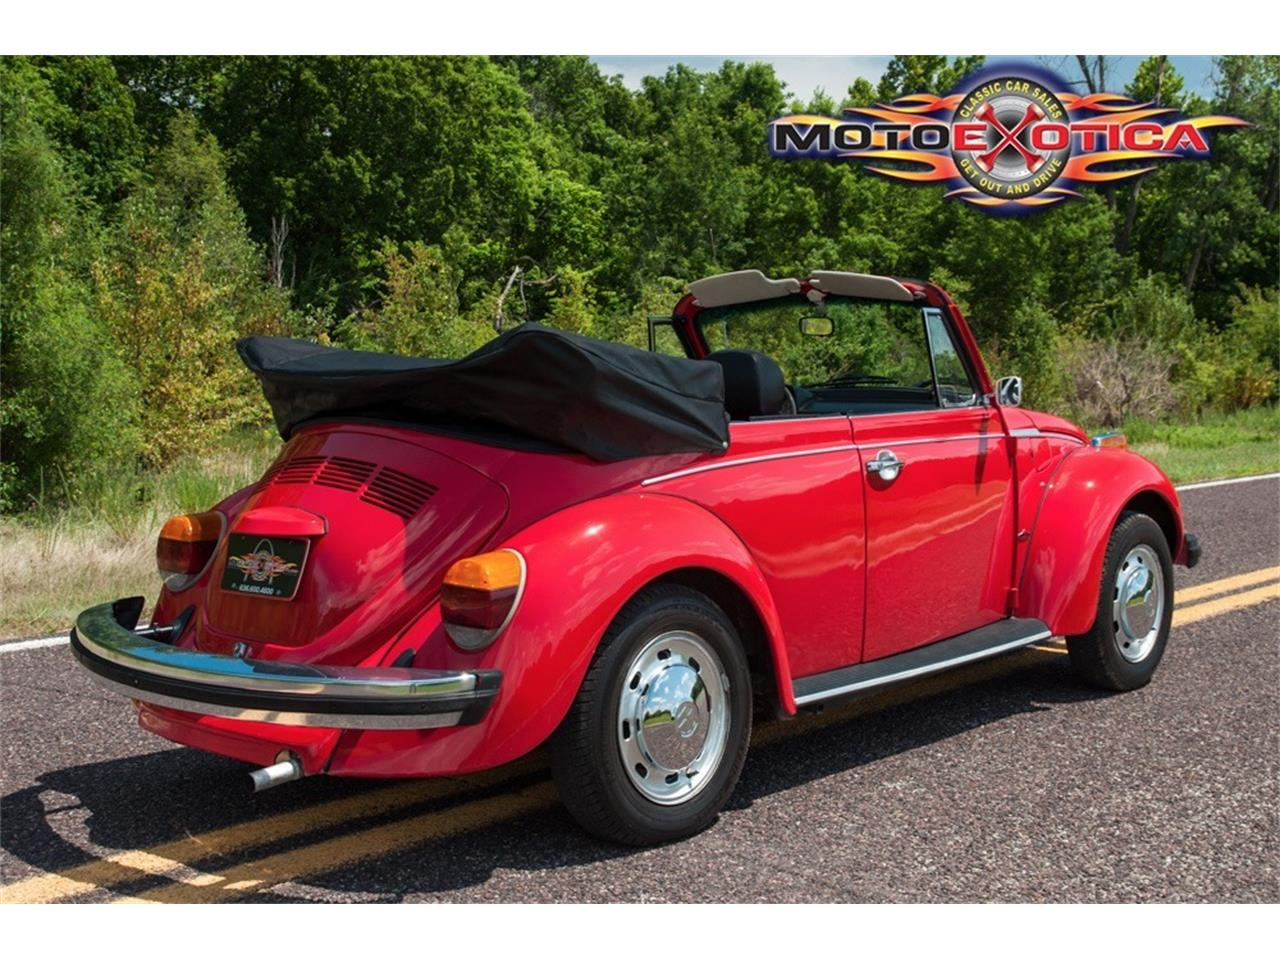 Large Picture of 1978 Volkswagen Super Beetle - $17,900.00 Offered by MotoeXotica Classic Cars - LG5A